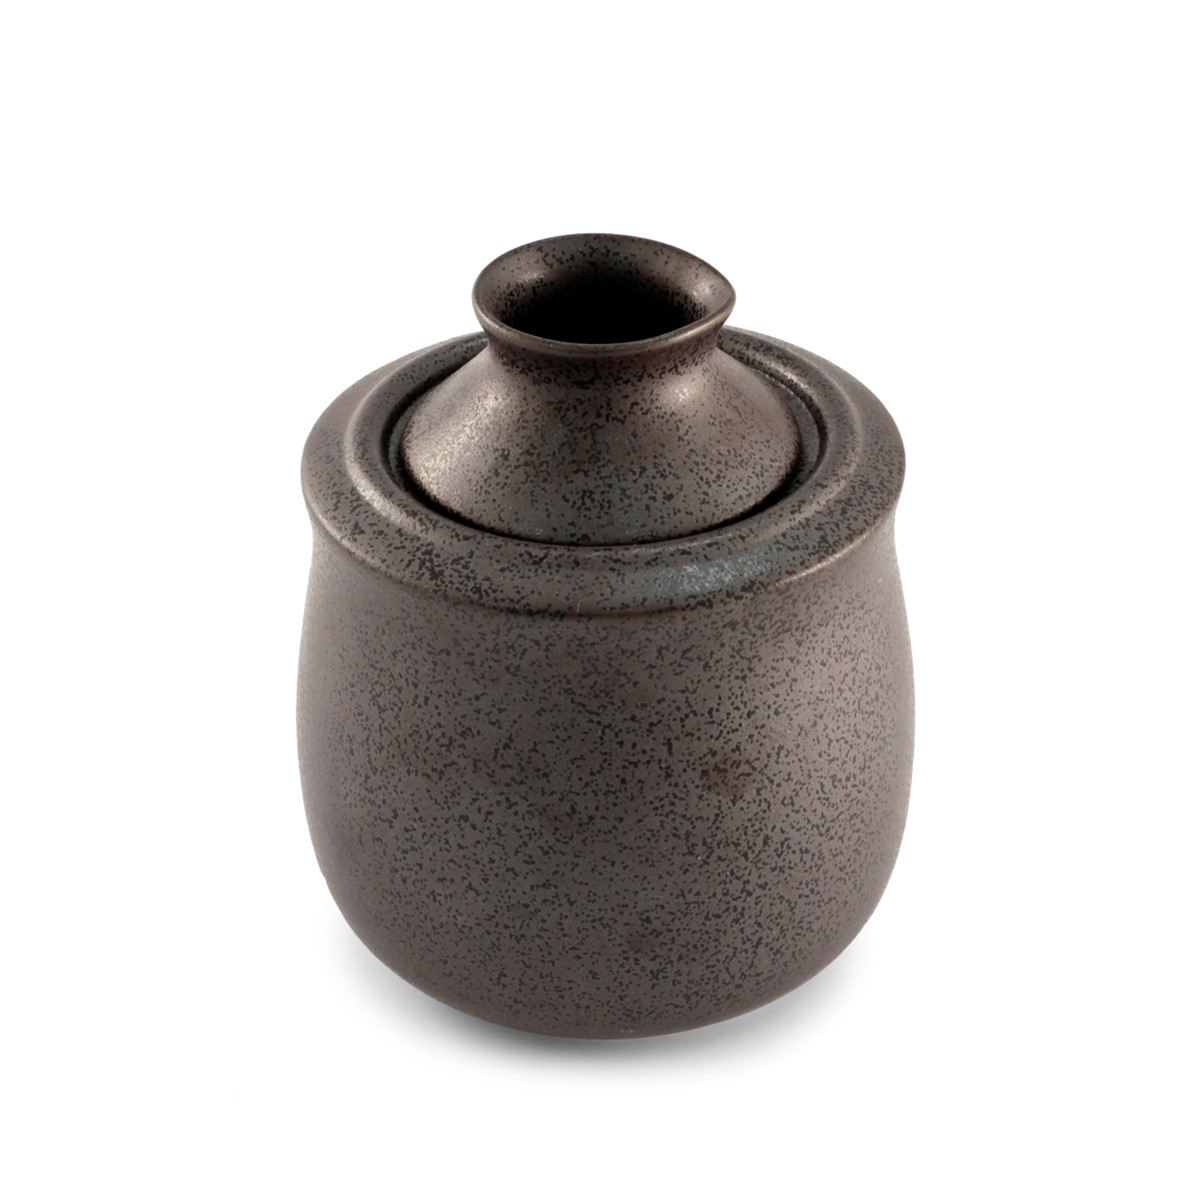 Black Kessho Ceramic Sake Server Amp Warmer Medium 5 Oz